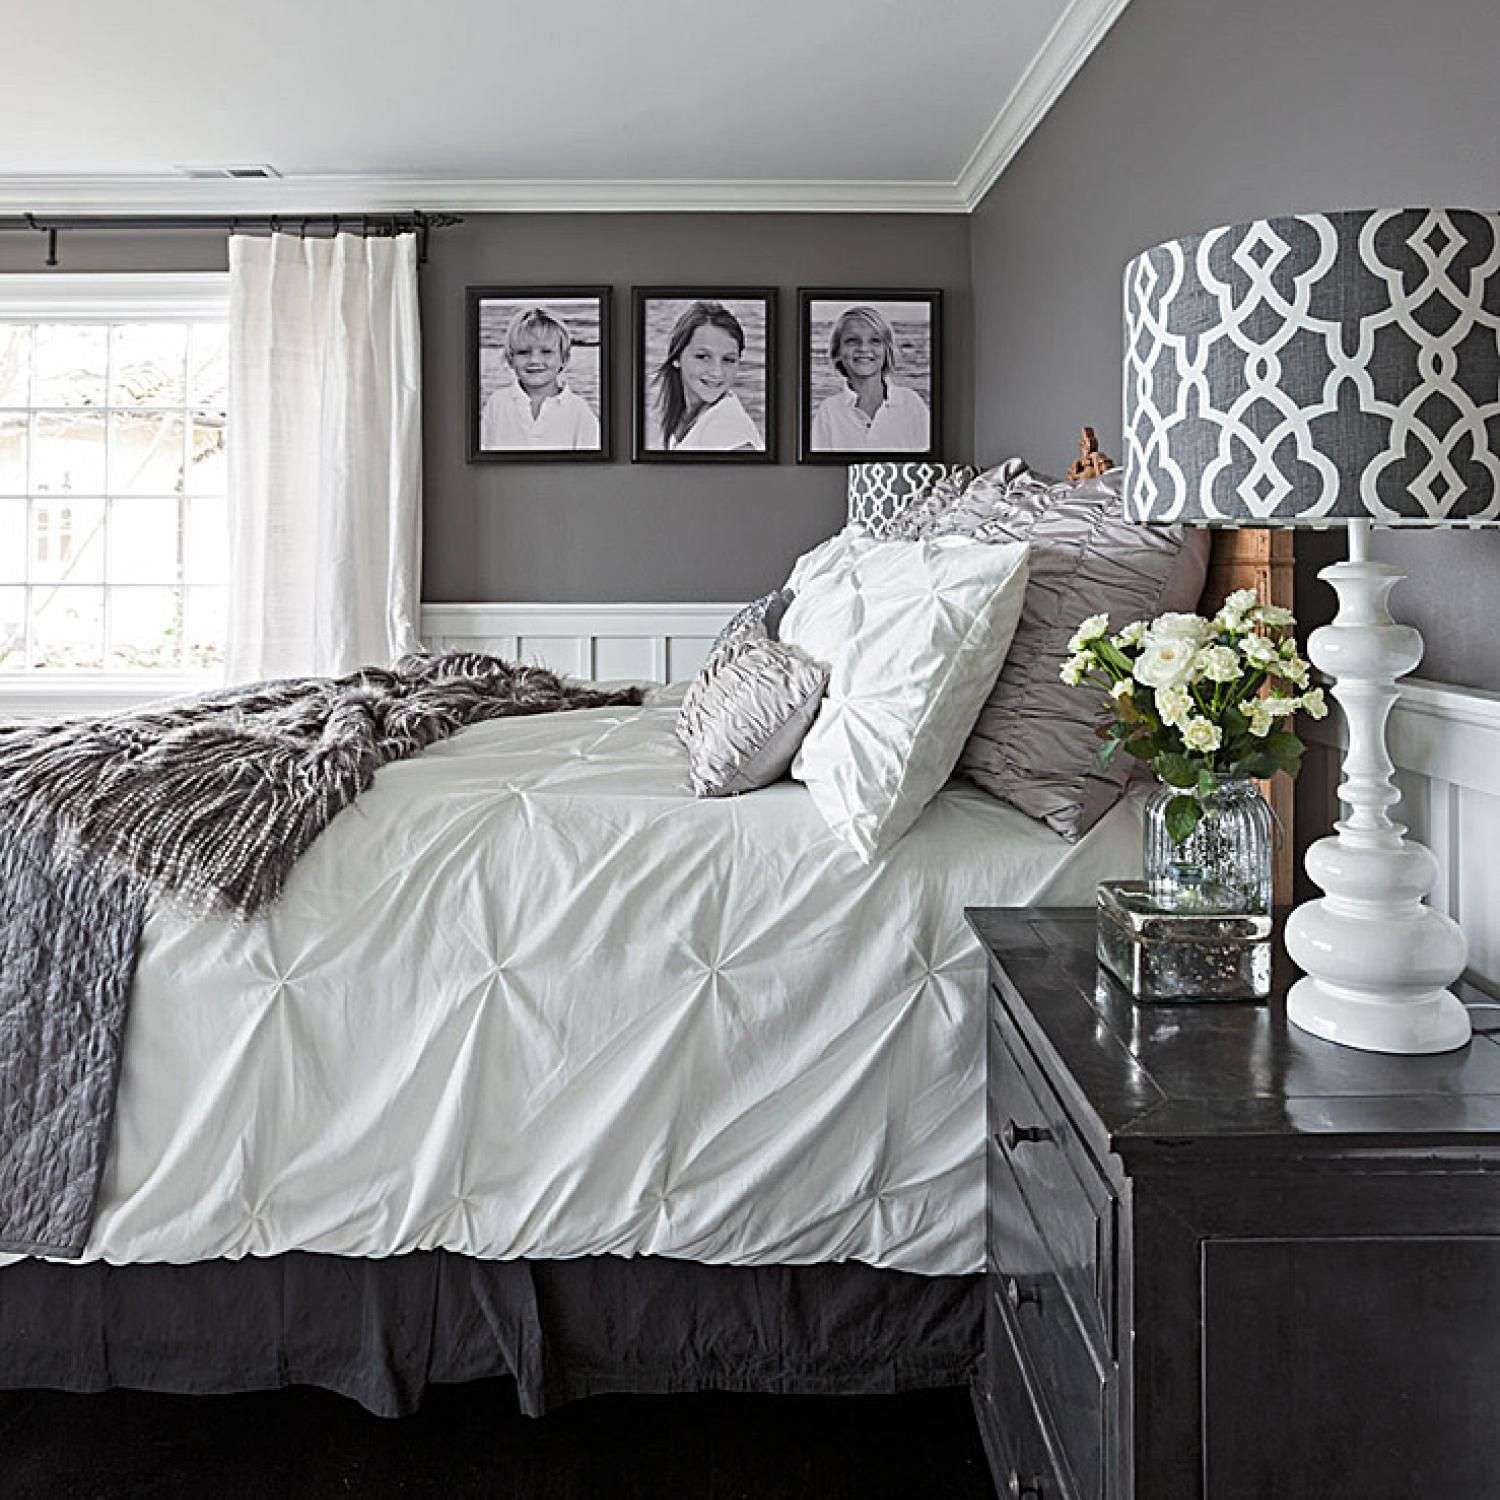 Gorgeous gray and white bedrooms bedrooms gray and for Bedroom inspiration grey walls